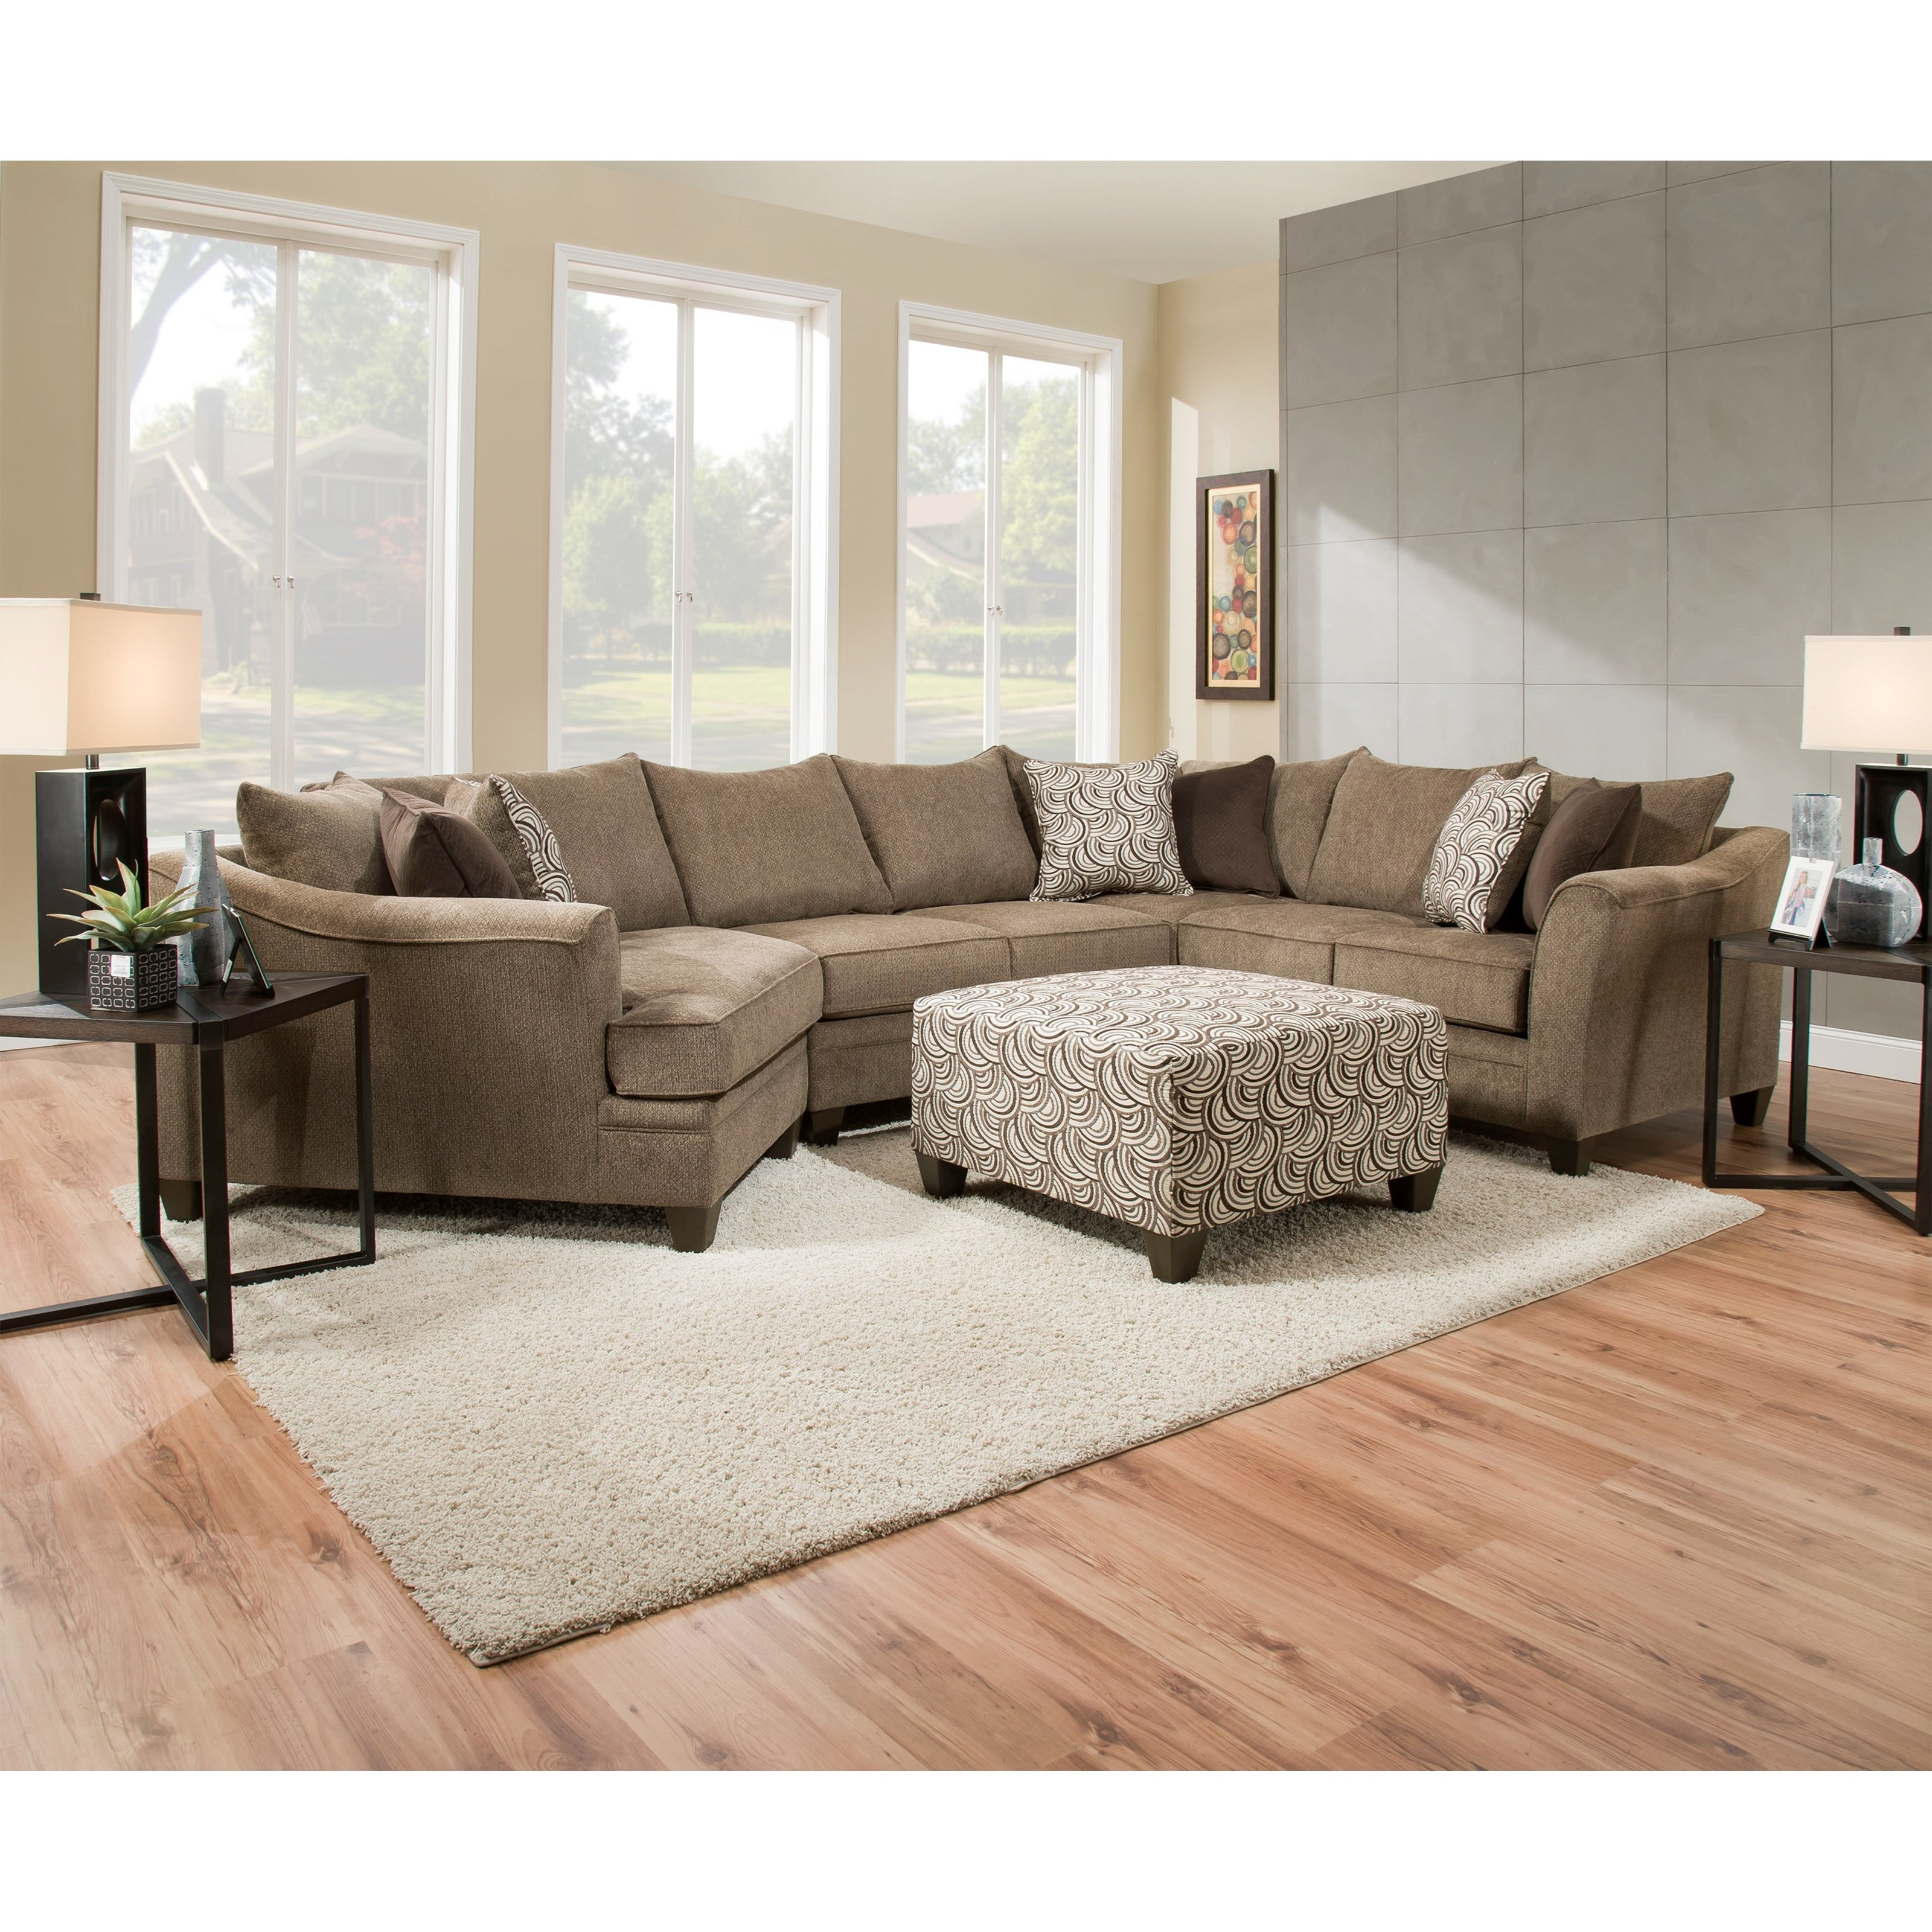 United Furniture Industries 6485 Stationary Living Room Group - Item Number: 6485 Living Room Group 3 - Truffle